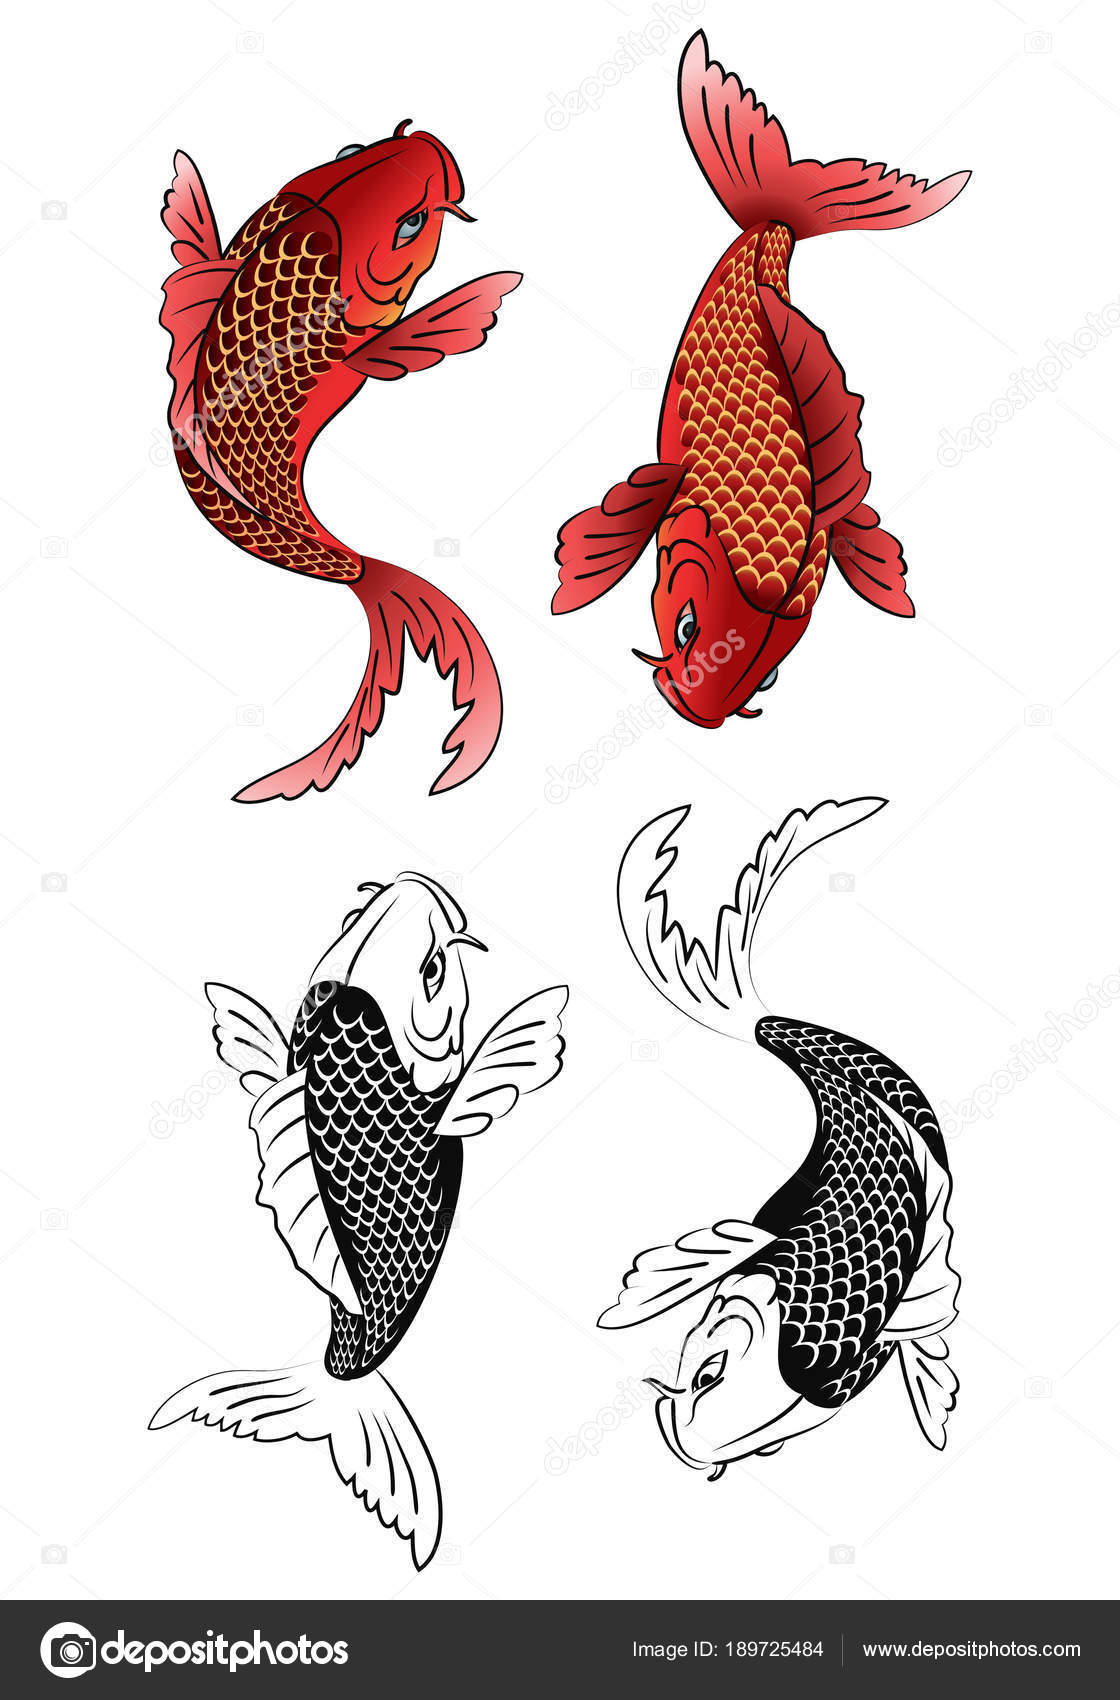 two koi fish tattoo — Stock Photo © onionime #189725484